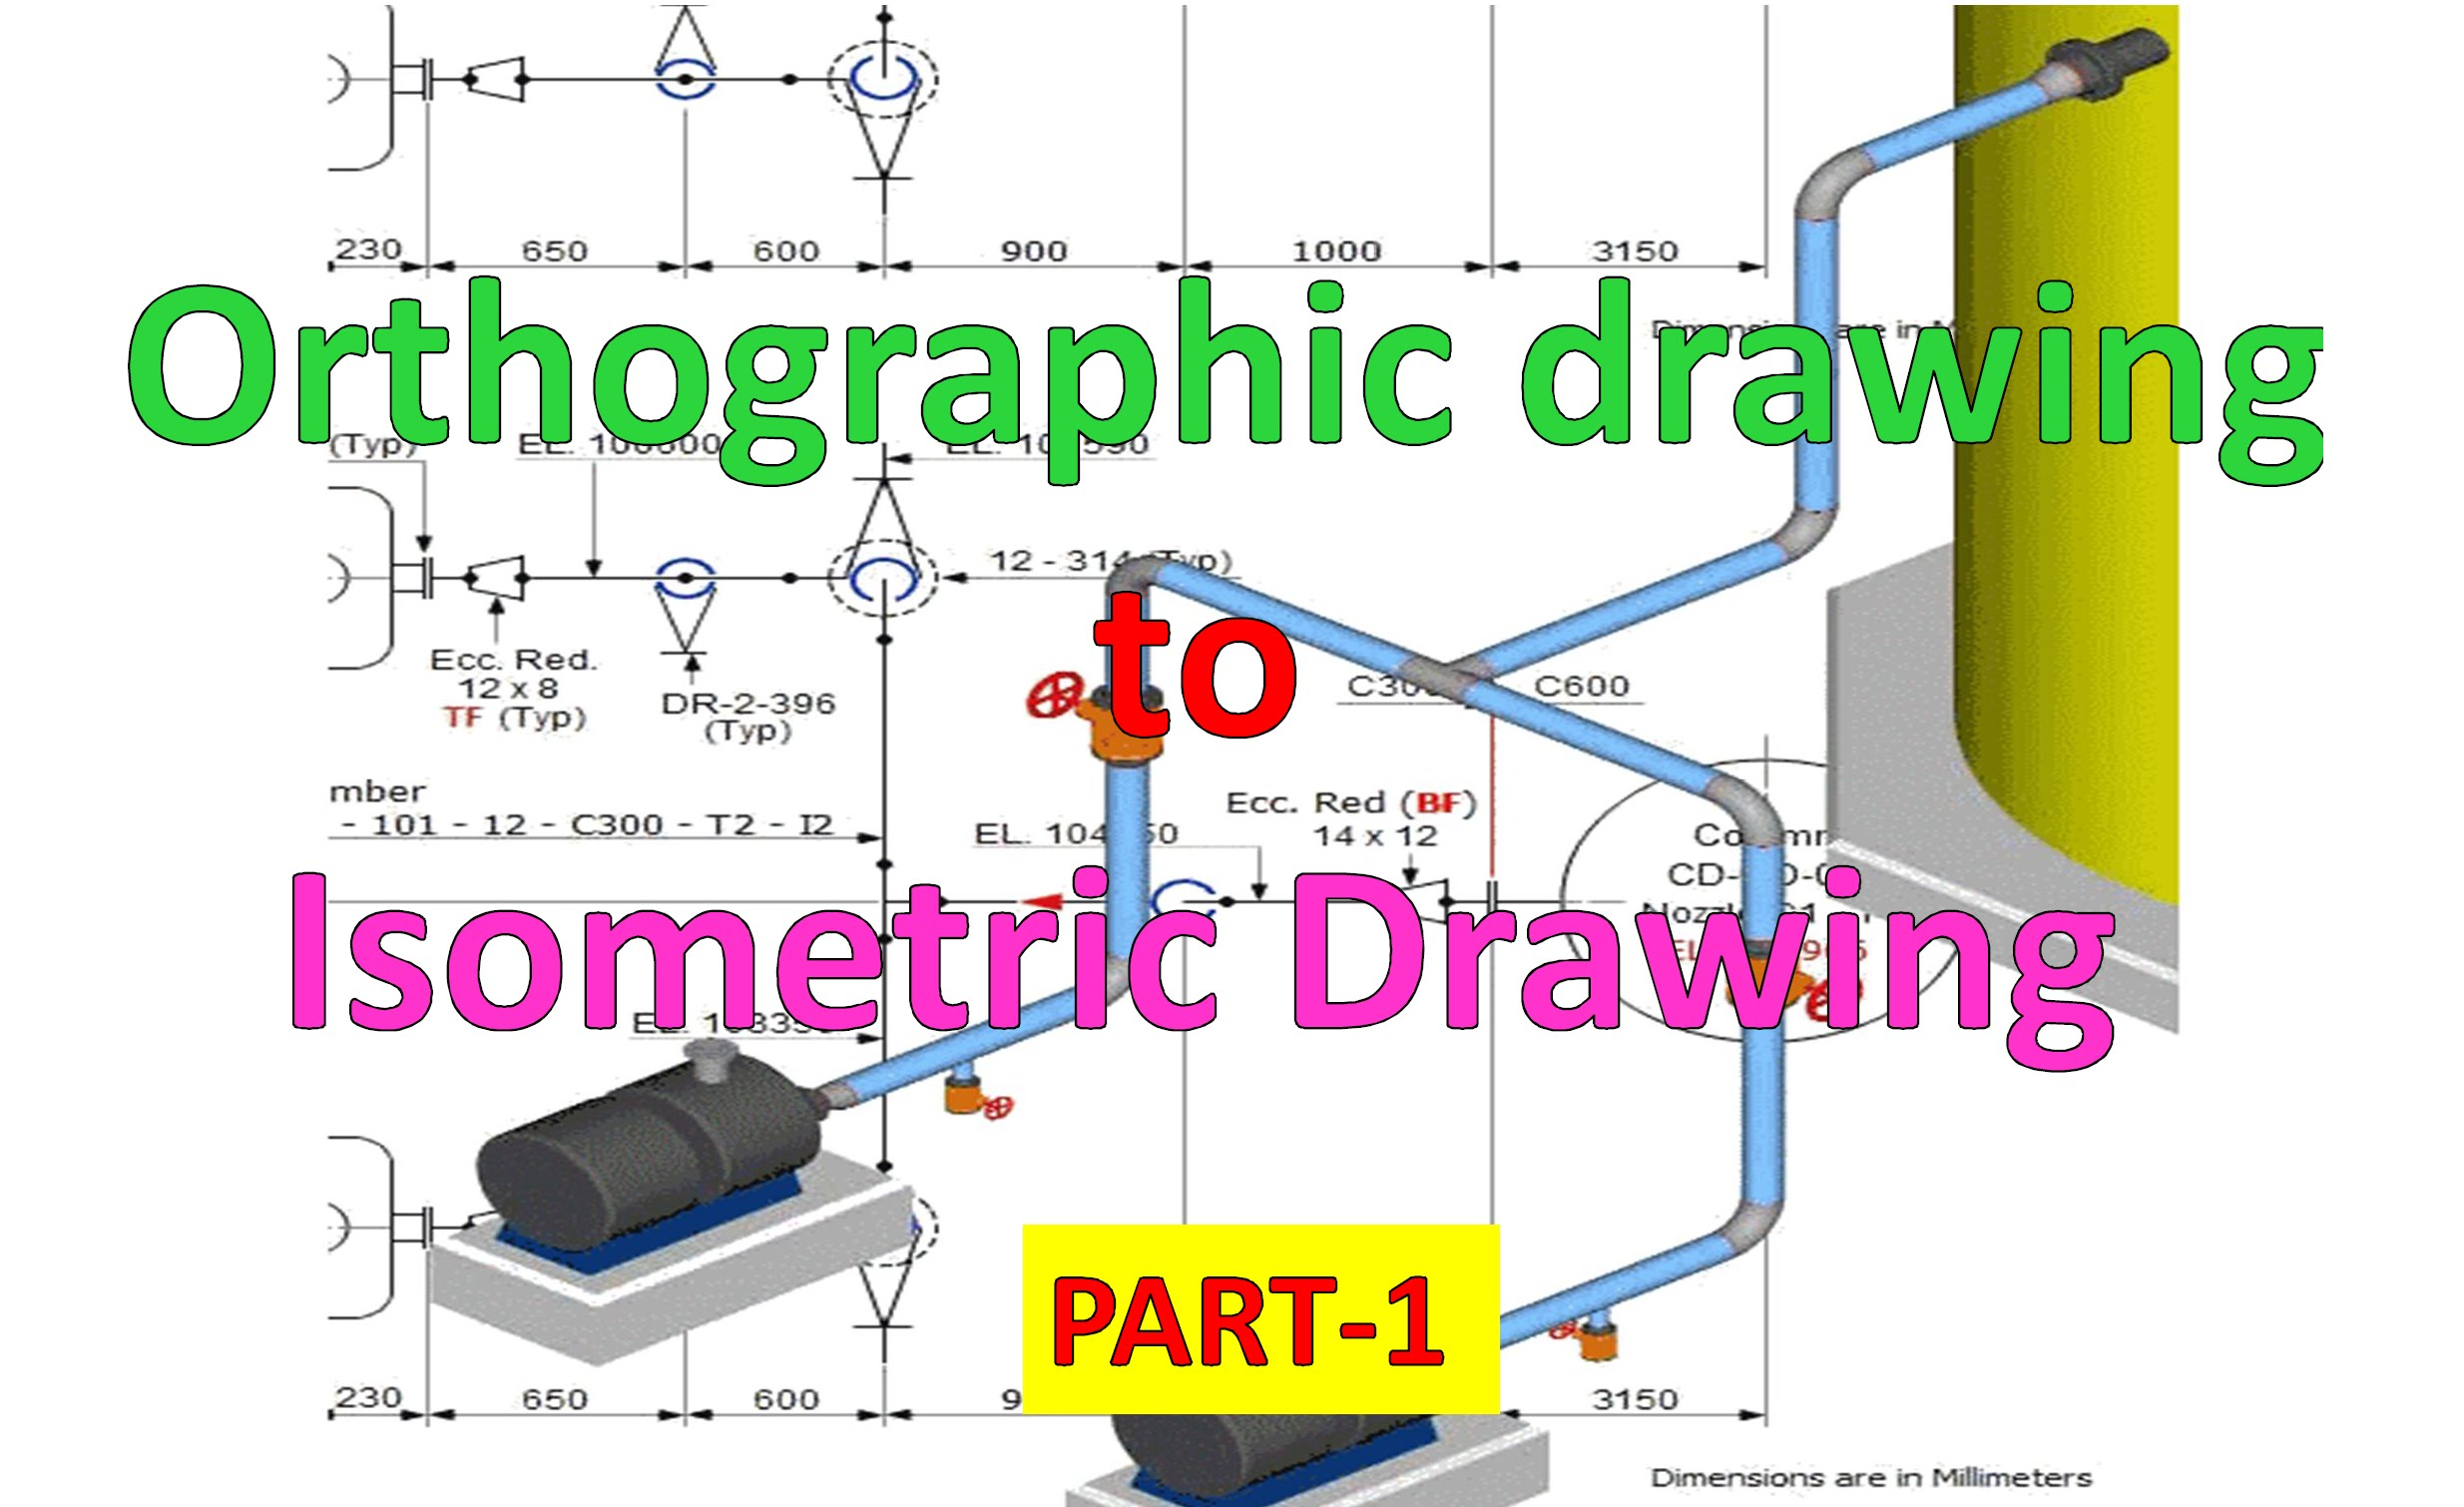 Isometric Pipe Drawing At Free For Personal Use Piping Diagram 2469x1510 Draw From Orthographic Part 1